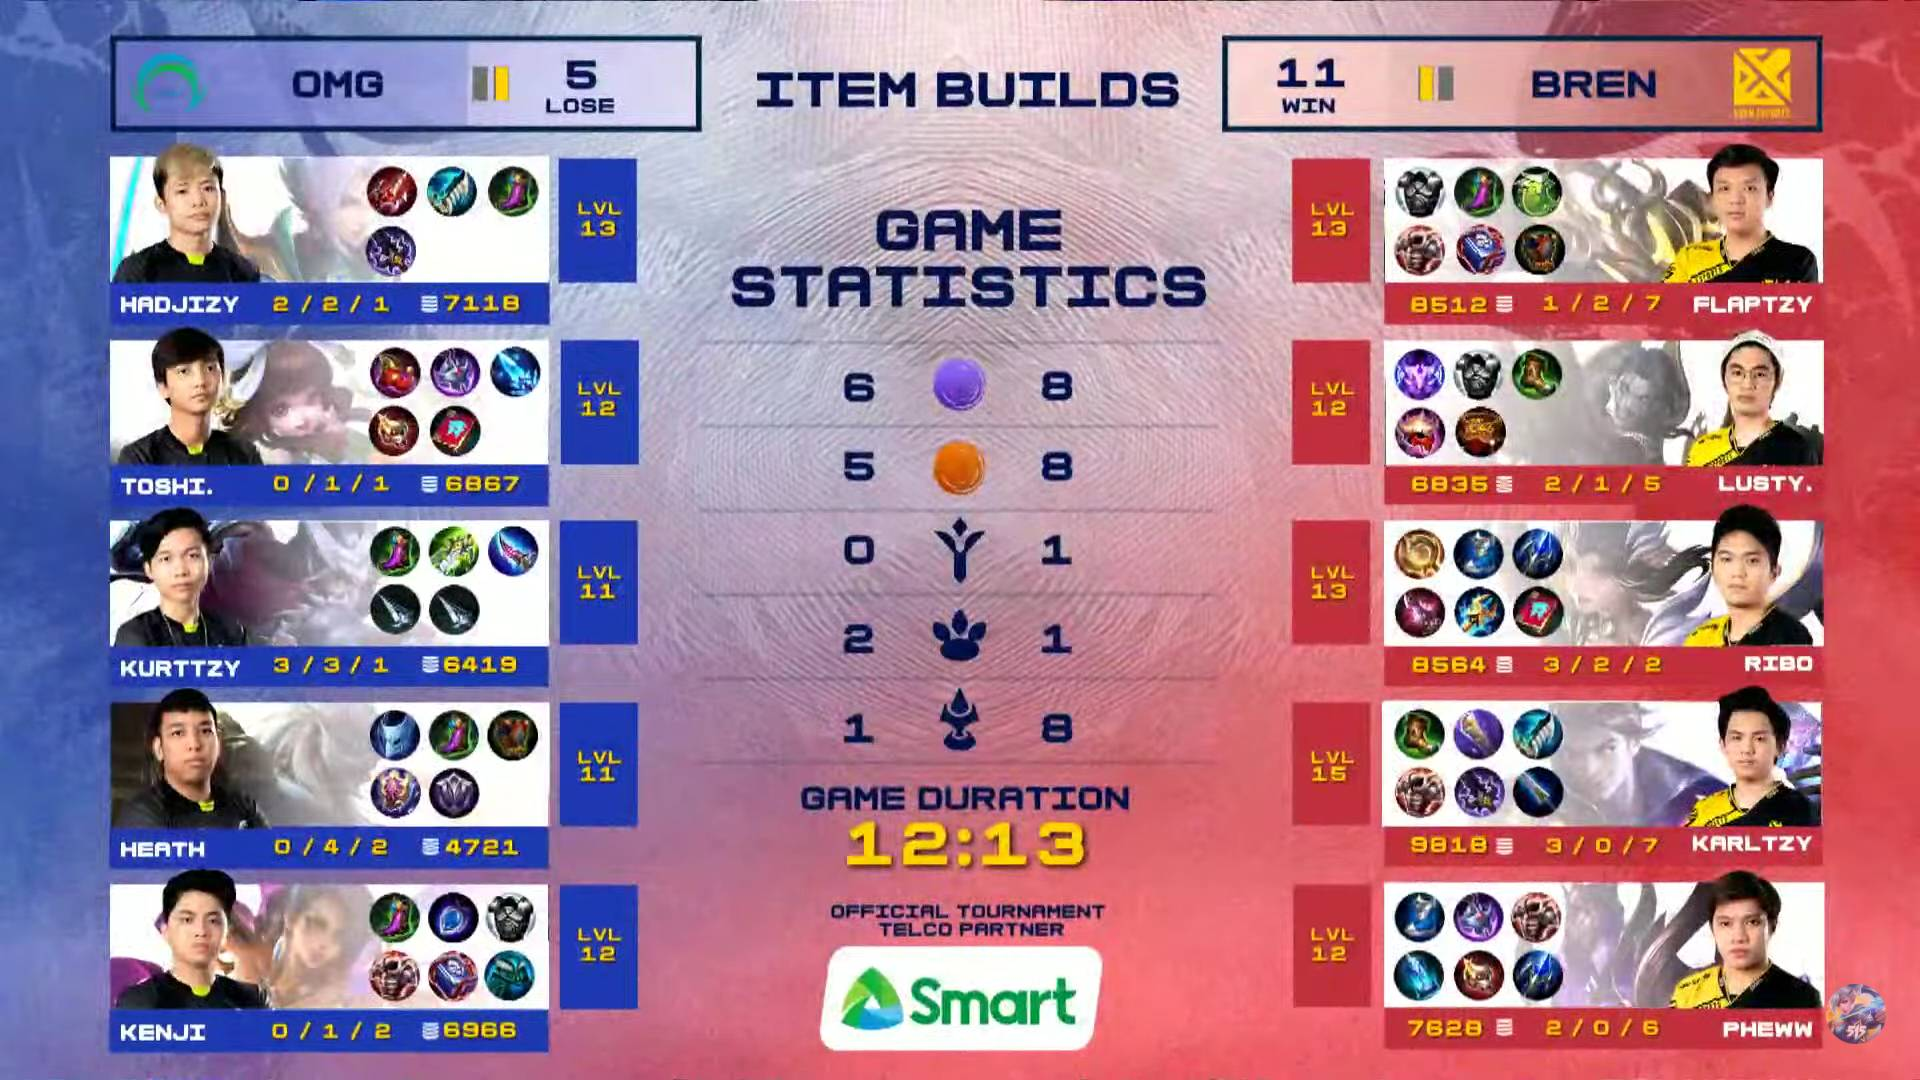 MPL-PH-Season-7-Bren-def-Omega-Game-2 Bren commits to KarlTzy's Claude, outlasts SMART Omega in MPL PH Finals rematch ESports Mobile Legends MPL-PH News  - philippine sports news